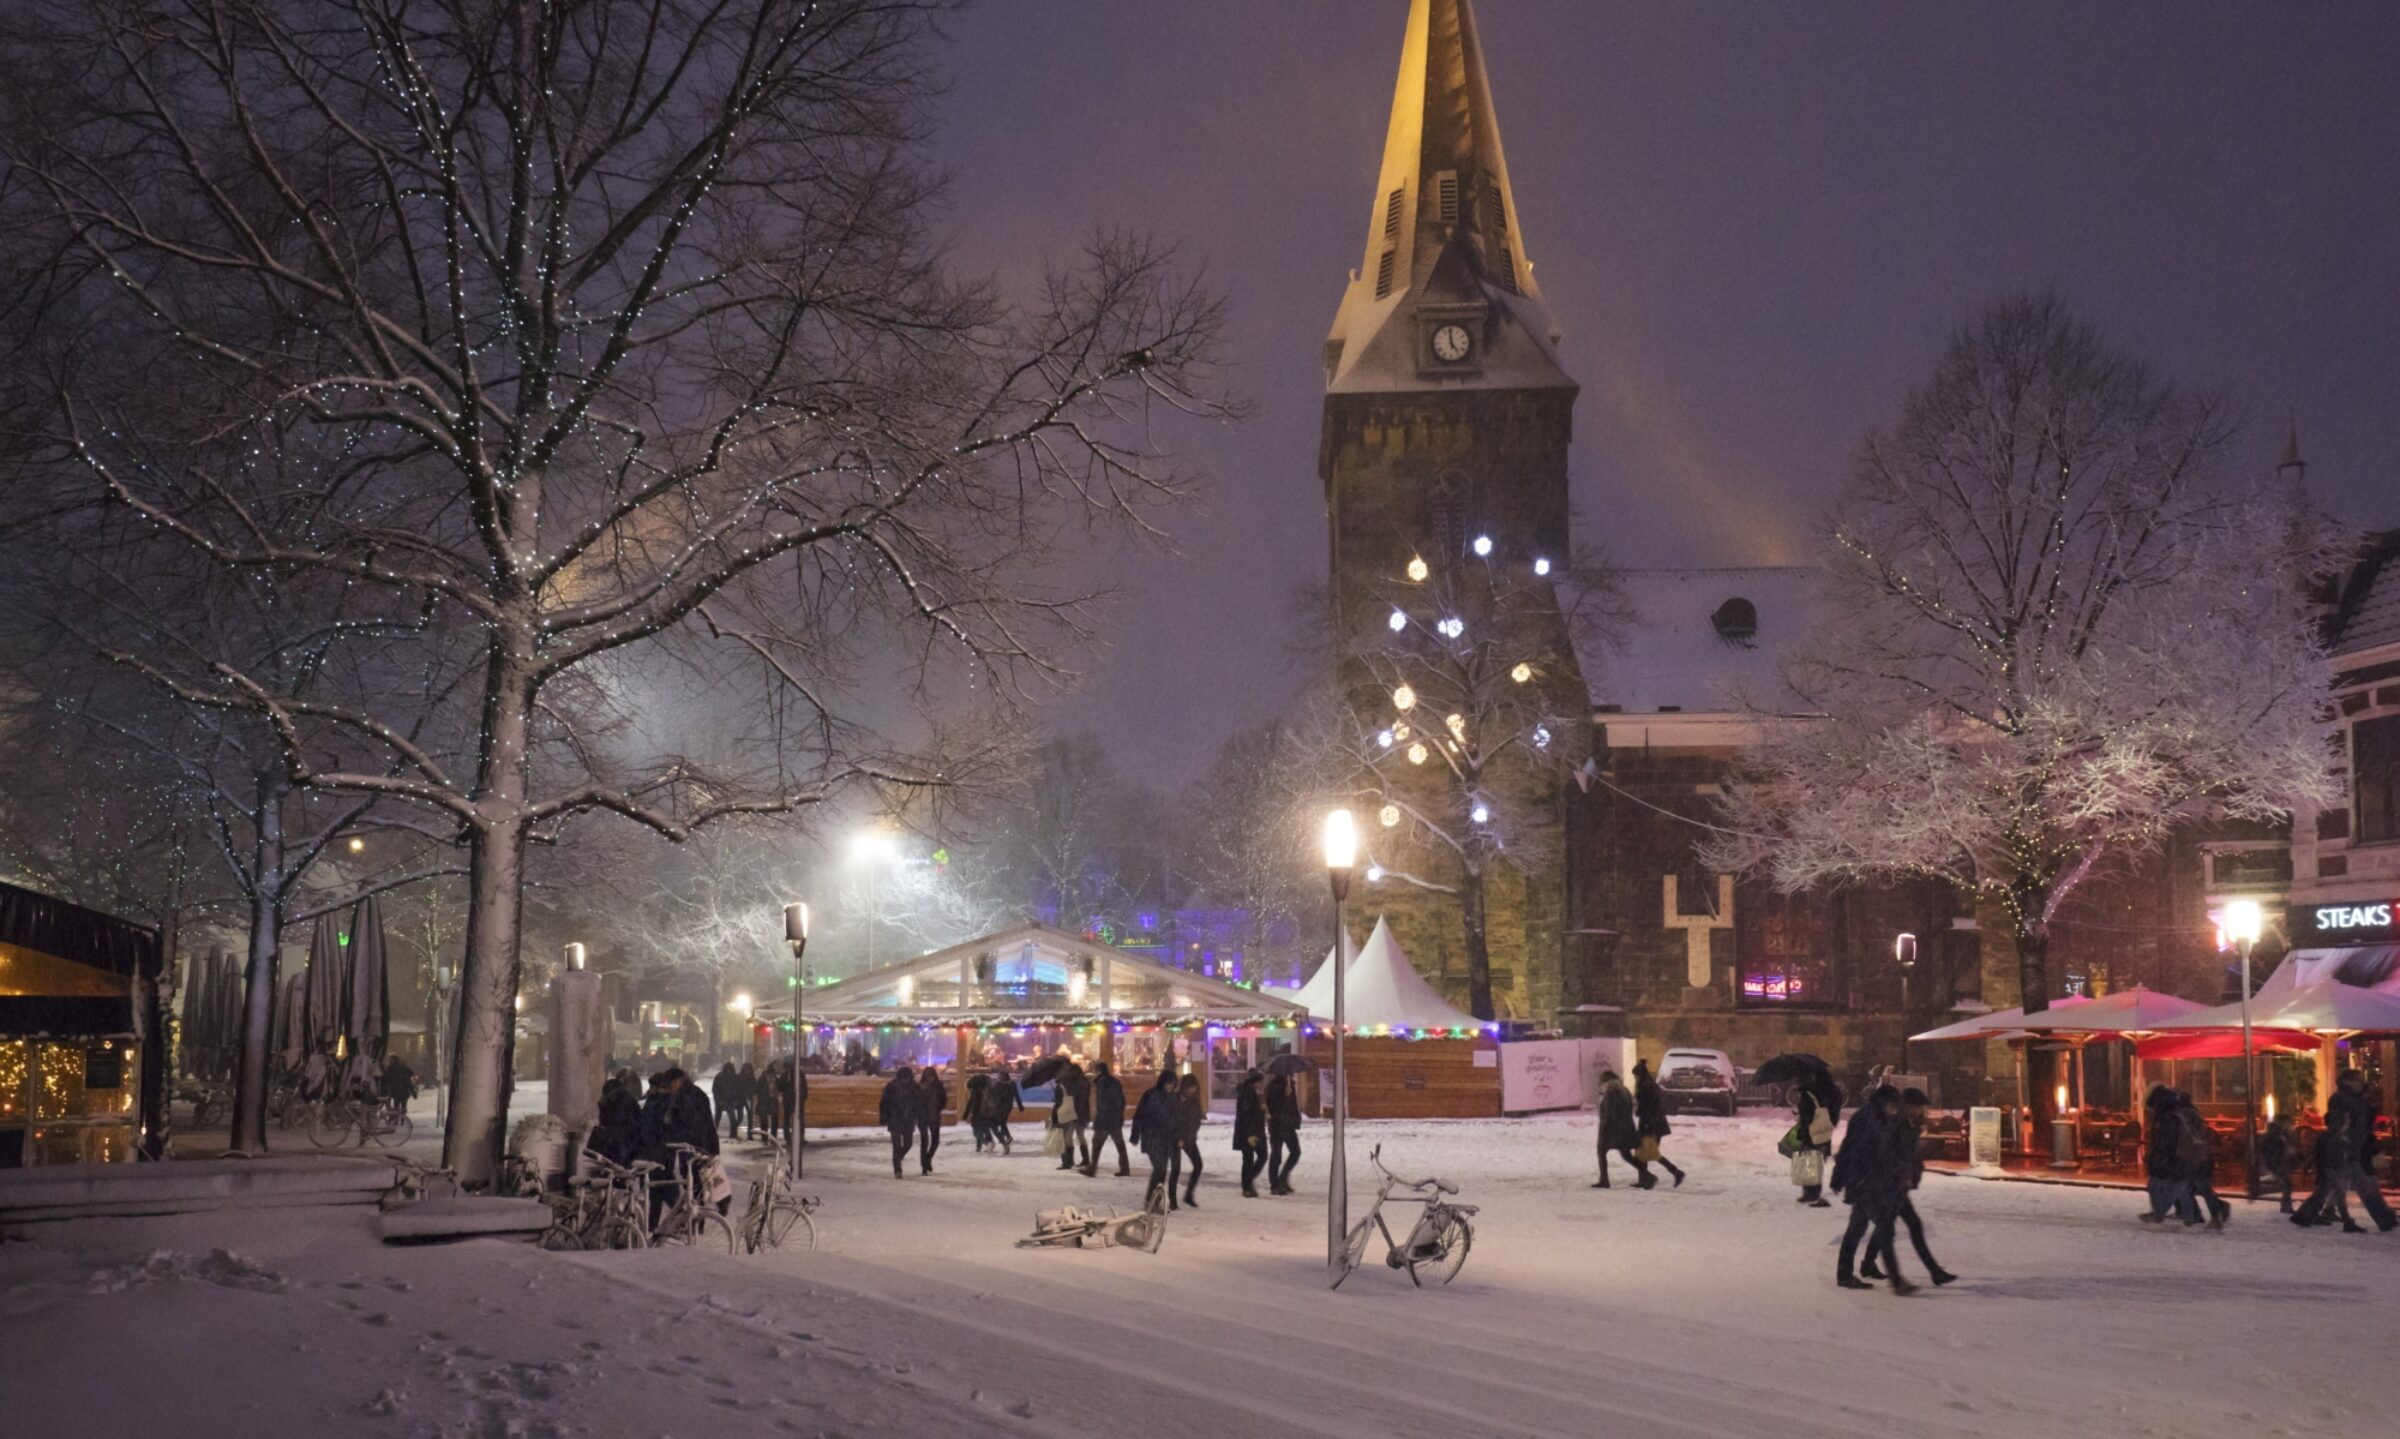 Christmas in Holland (Enschede)